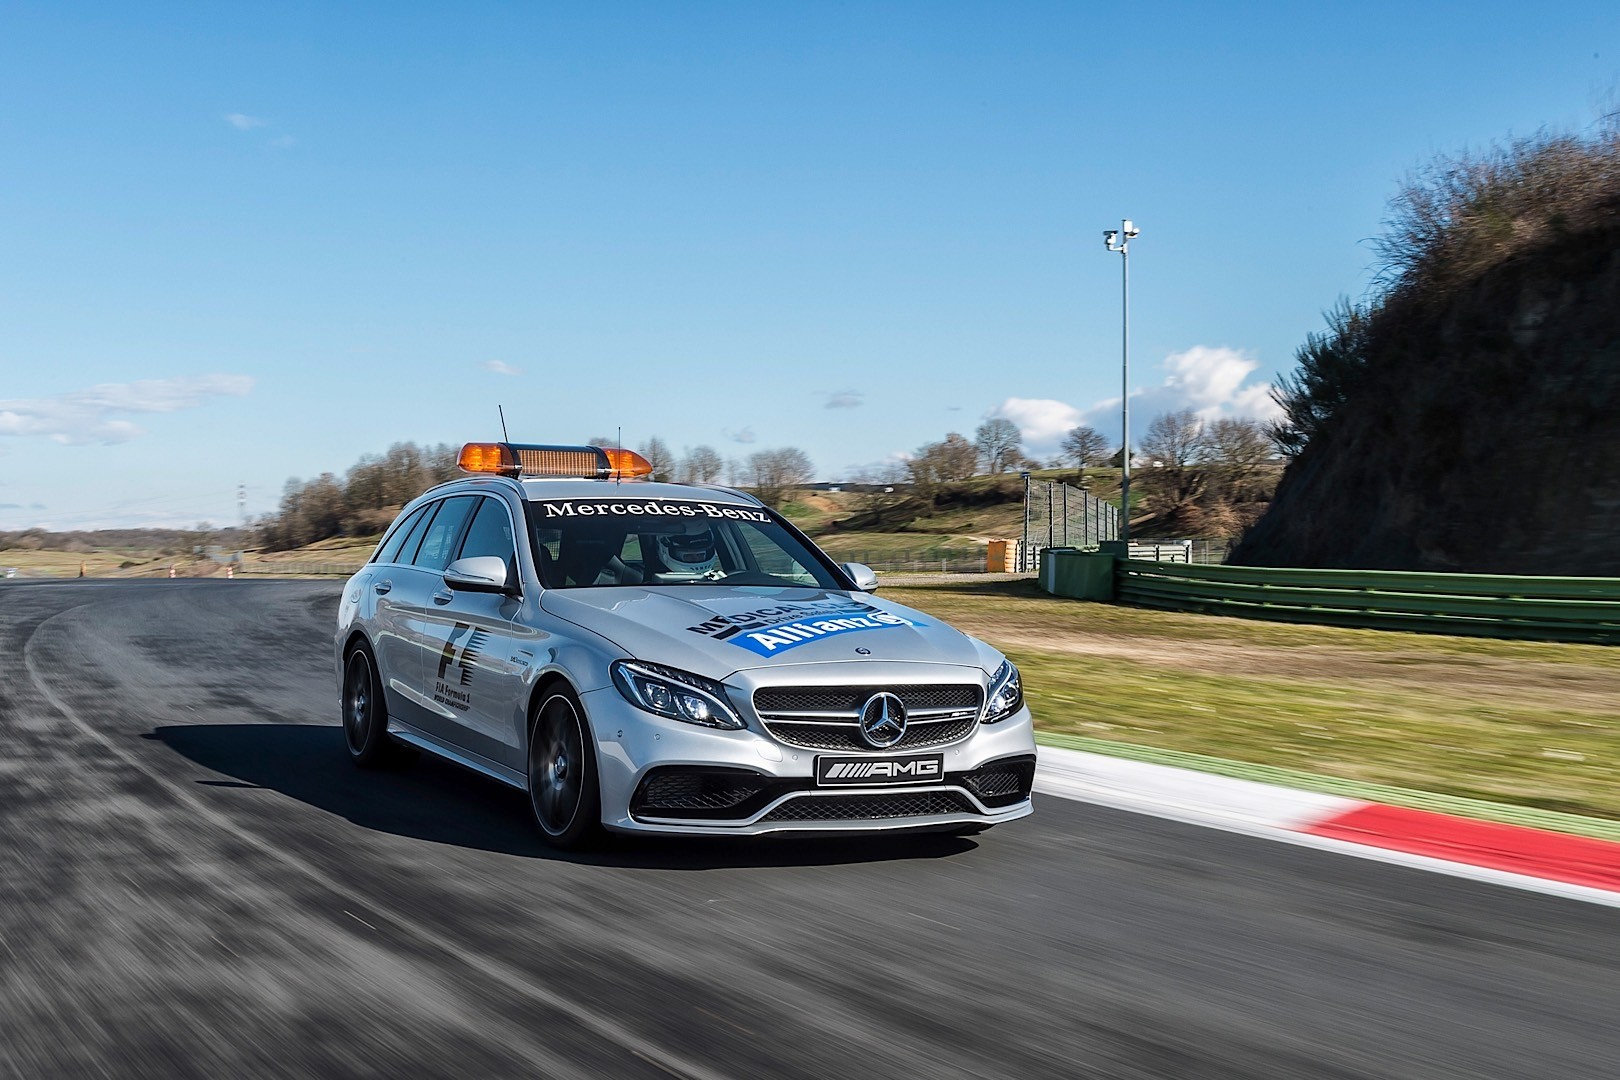 mercedes-amg gt is officially the 2015 formula 1 safety car